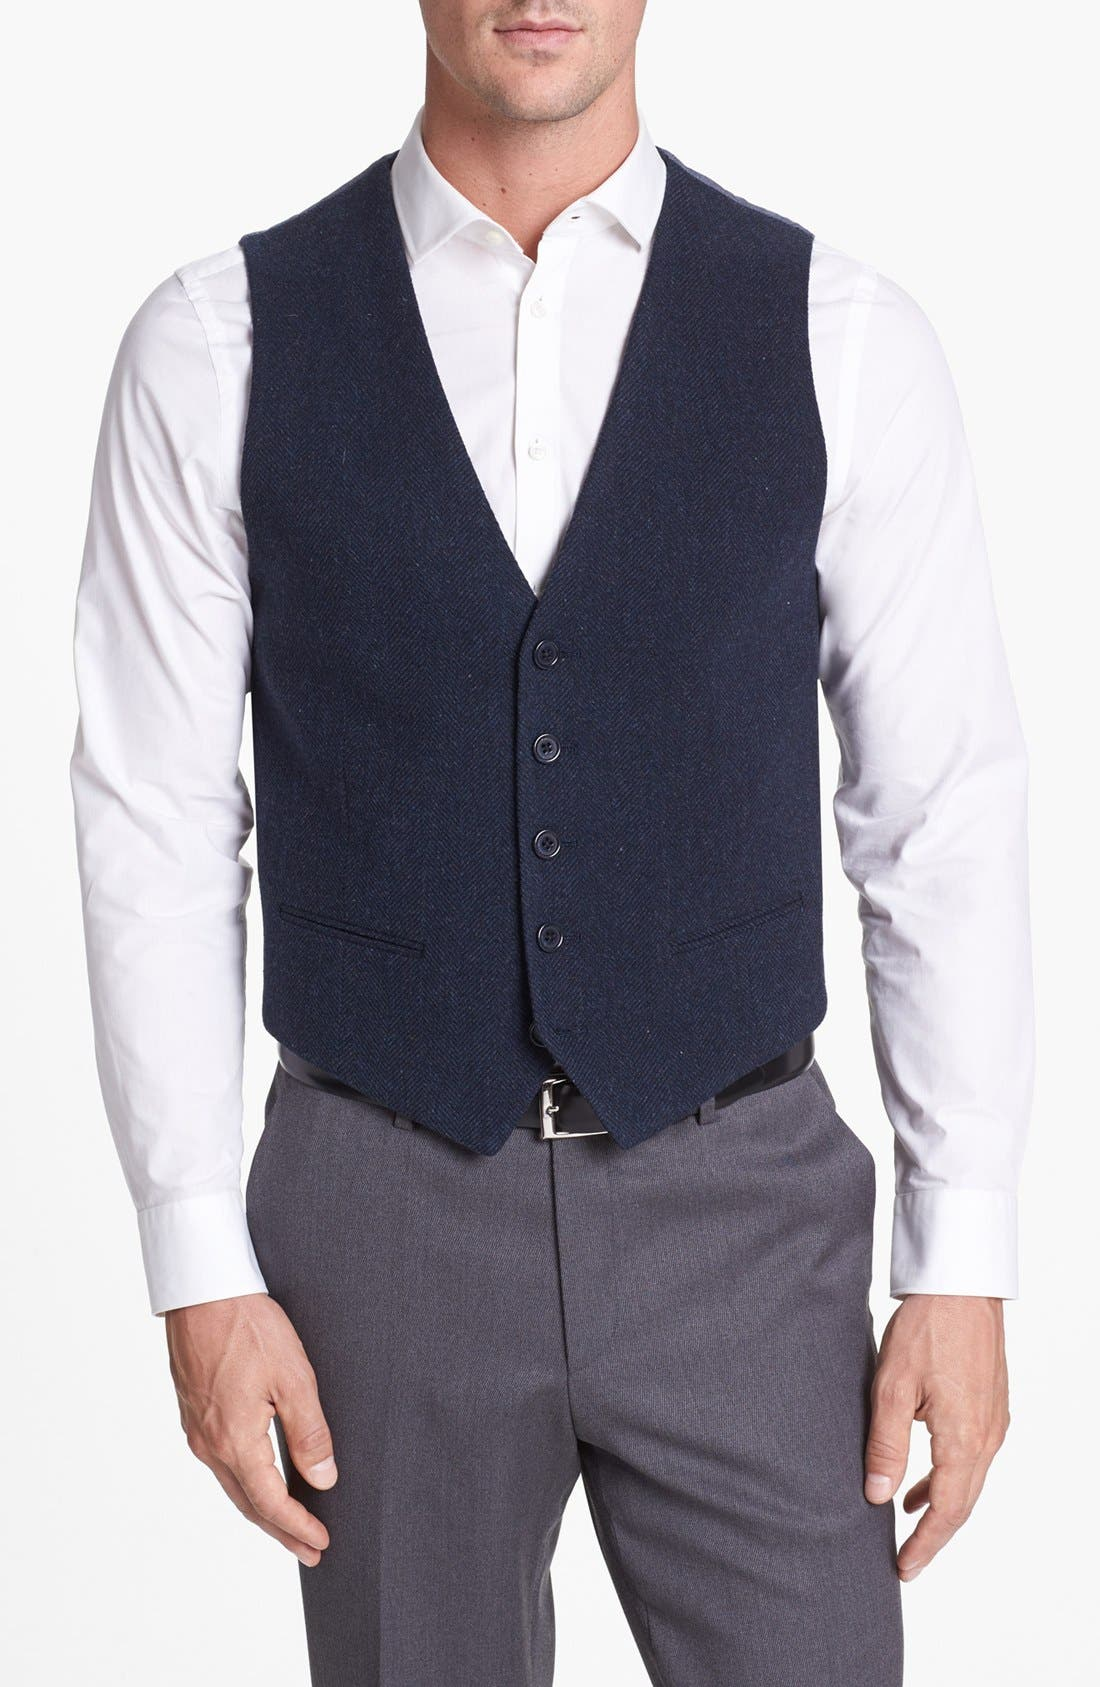 Alternate Image 1 Selected - Wallin & Bros. Herringbone Vest